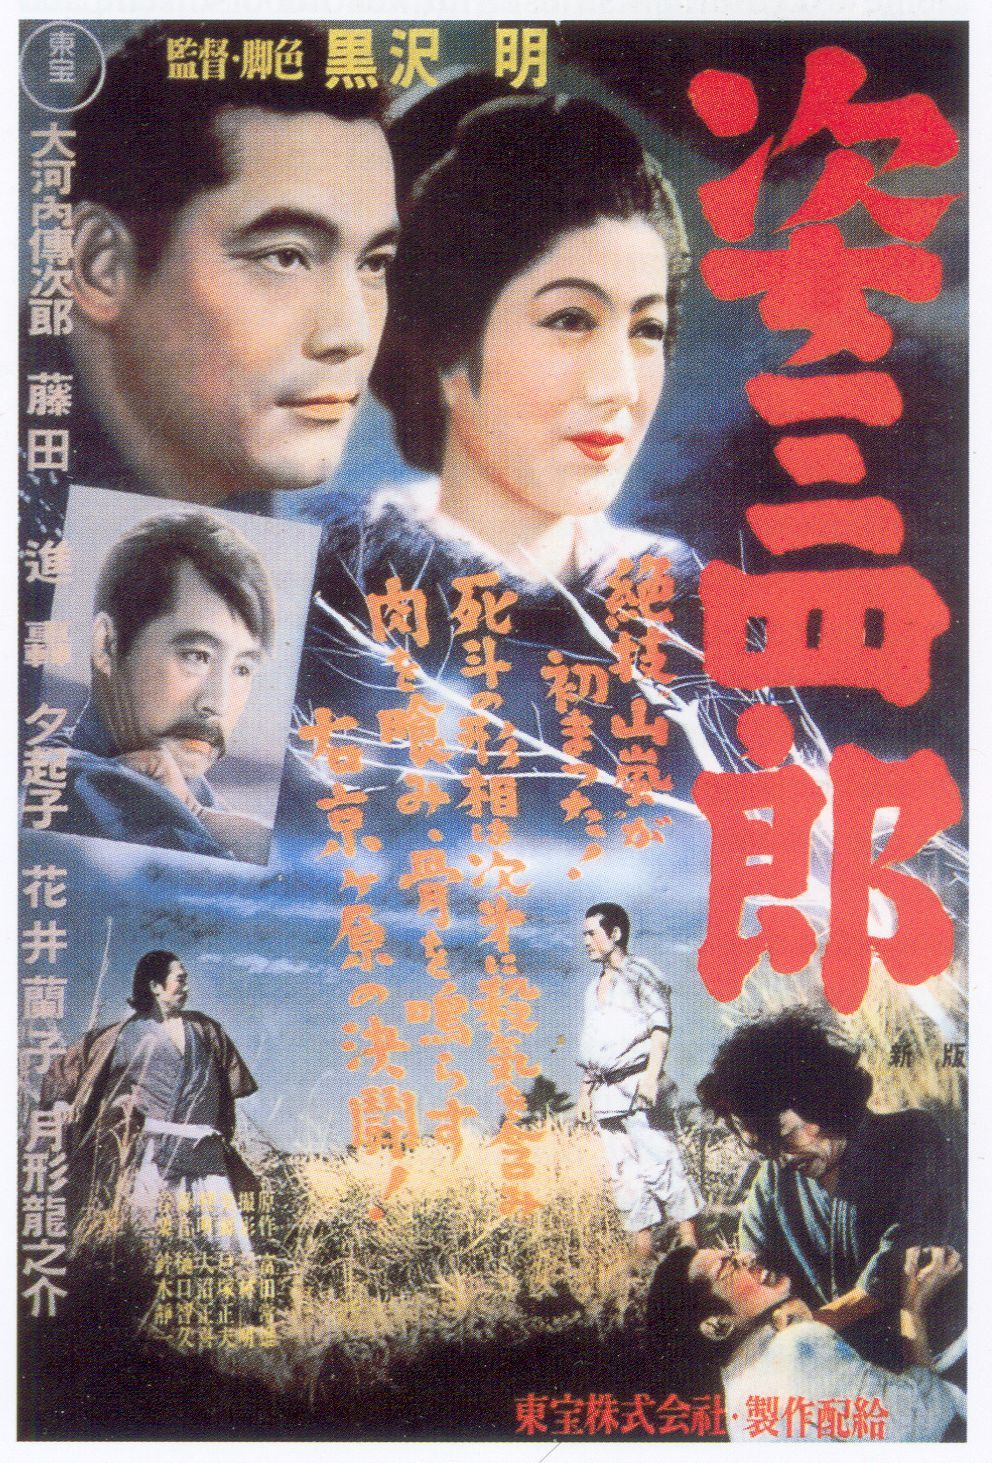 Sanshiro Sugata movie